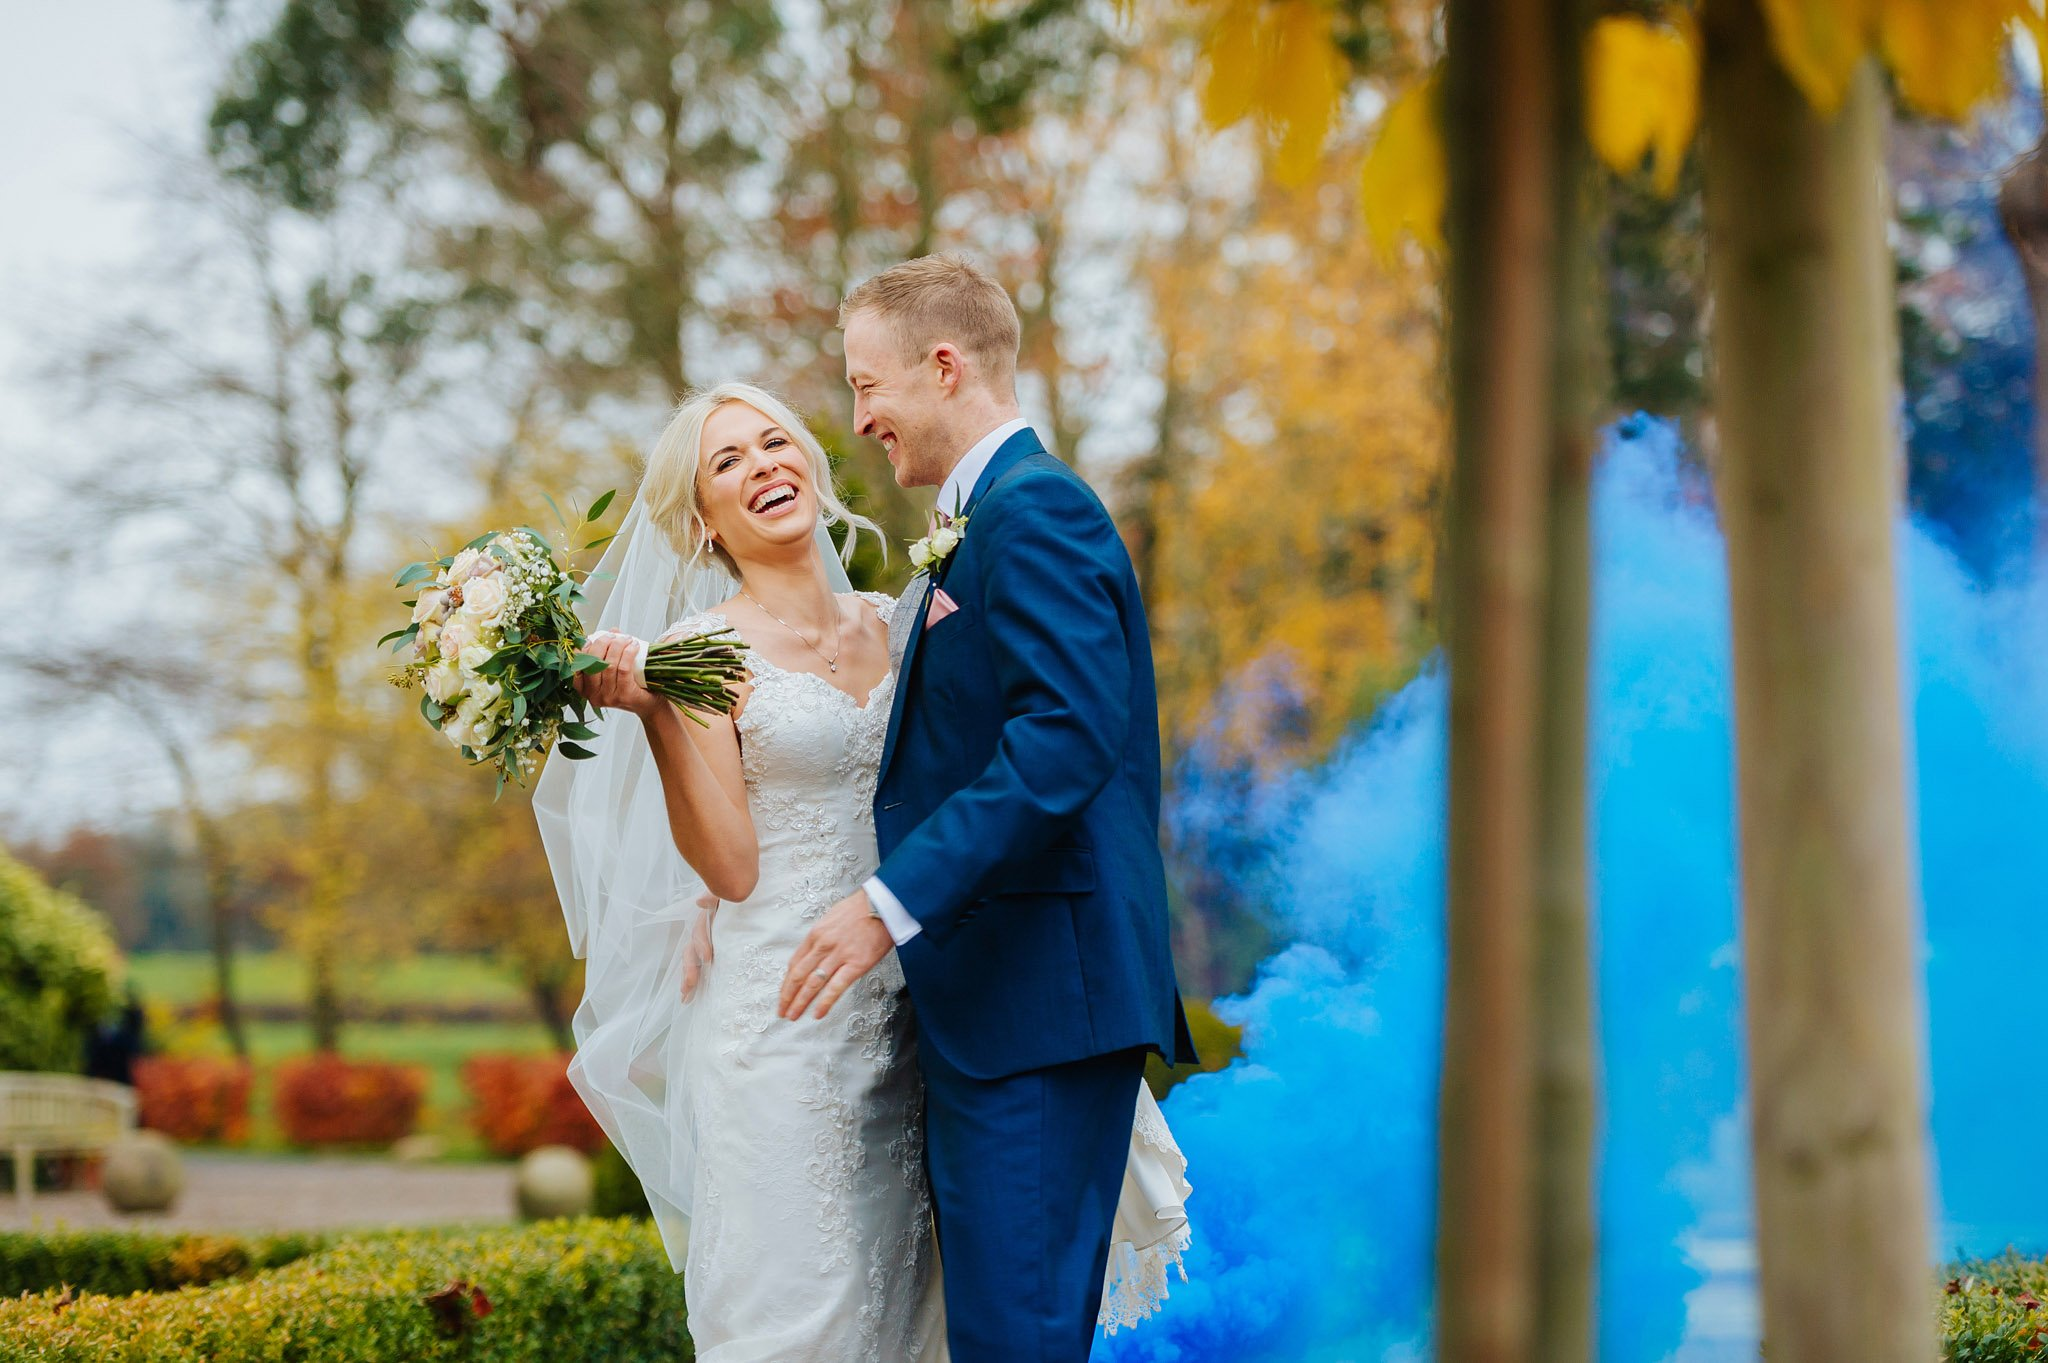 lemore manor wedding herefordshire 109 - Lemore Manor wedding, Herefordshire - West Midlands | Sadie + Ken